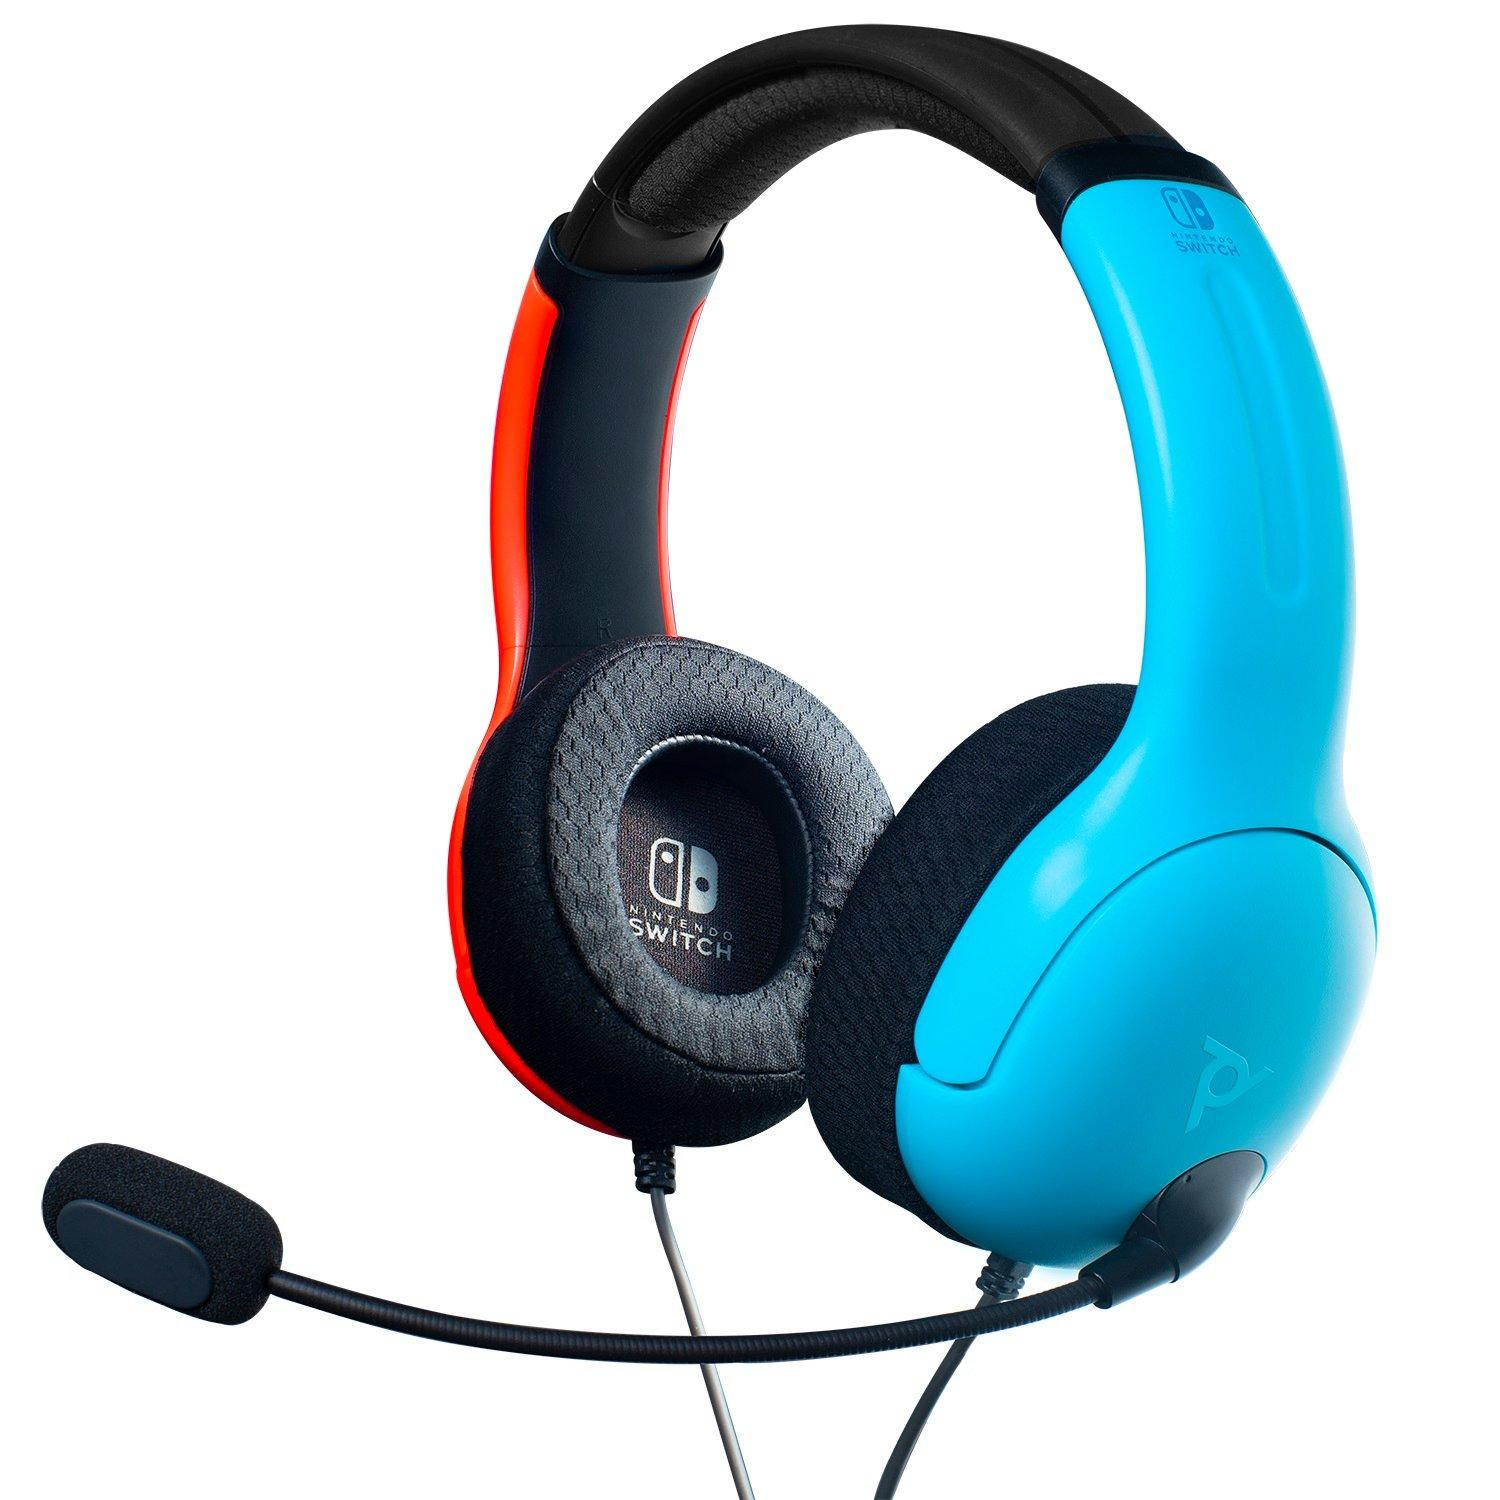 Lvl40 Neon Blue And Neon Red Wired Stereo Gaming Headset For Nintendo Switch Nintendo Switch Gamestop